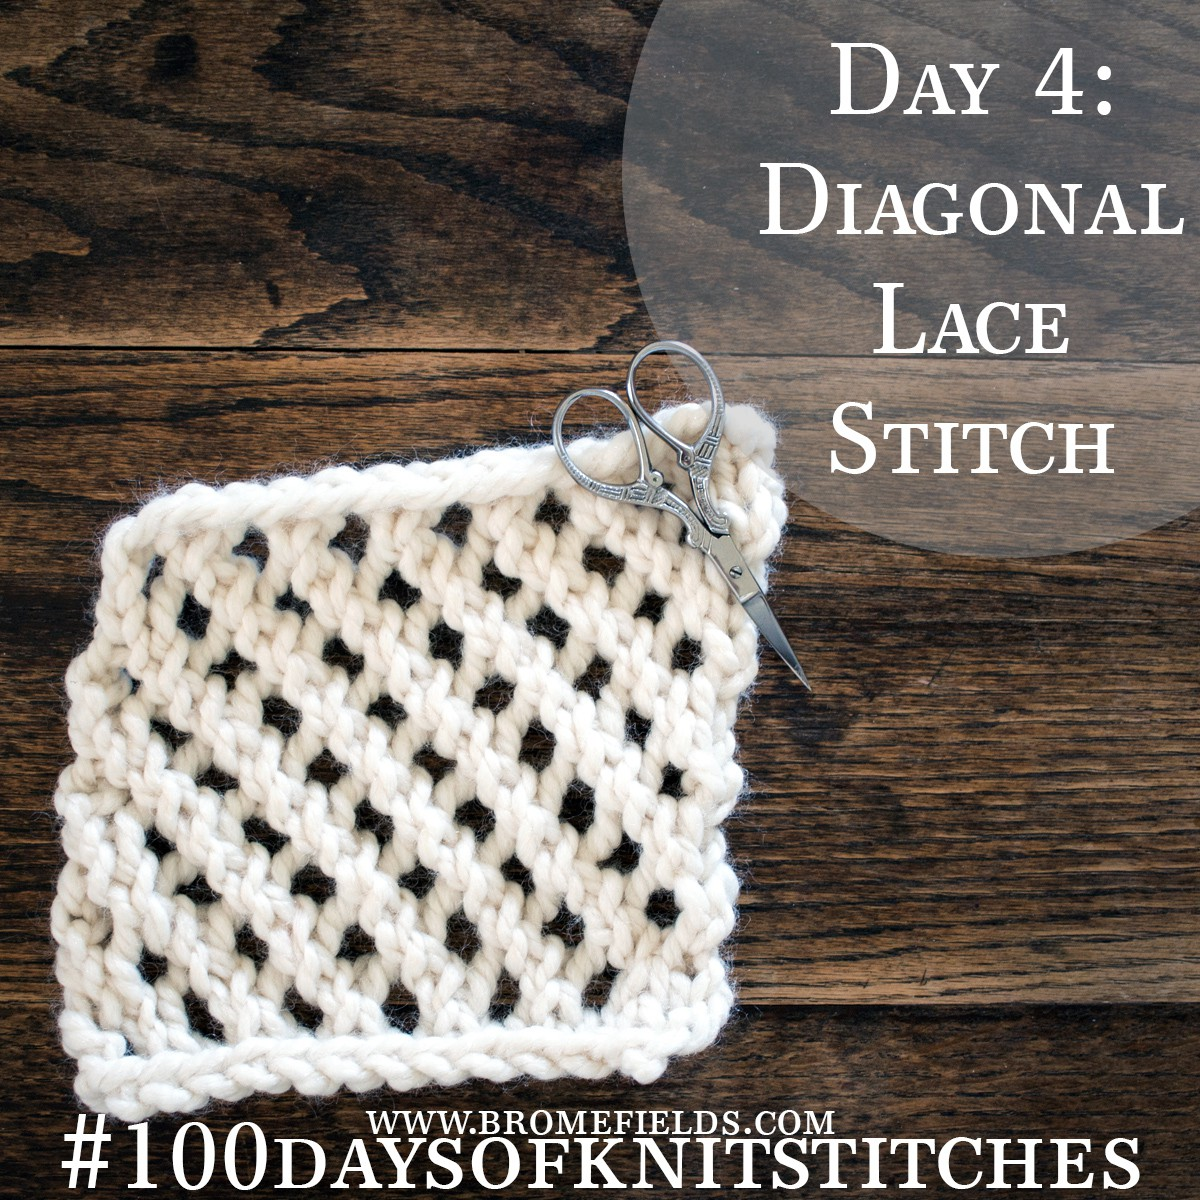 Day 4 : Diagonal Lace Knit Stitch : #100daysofknitstitches by Brome Fields